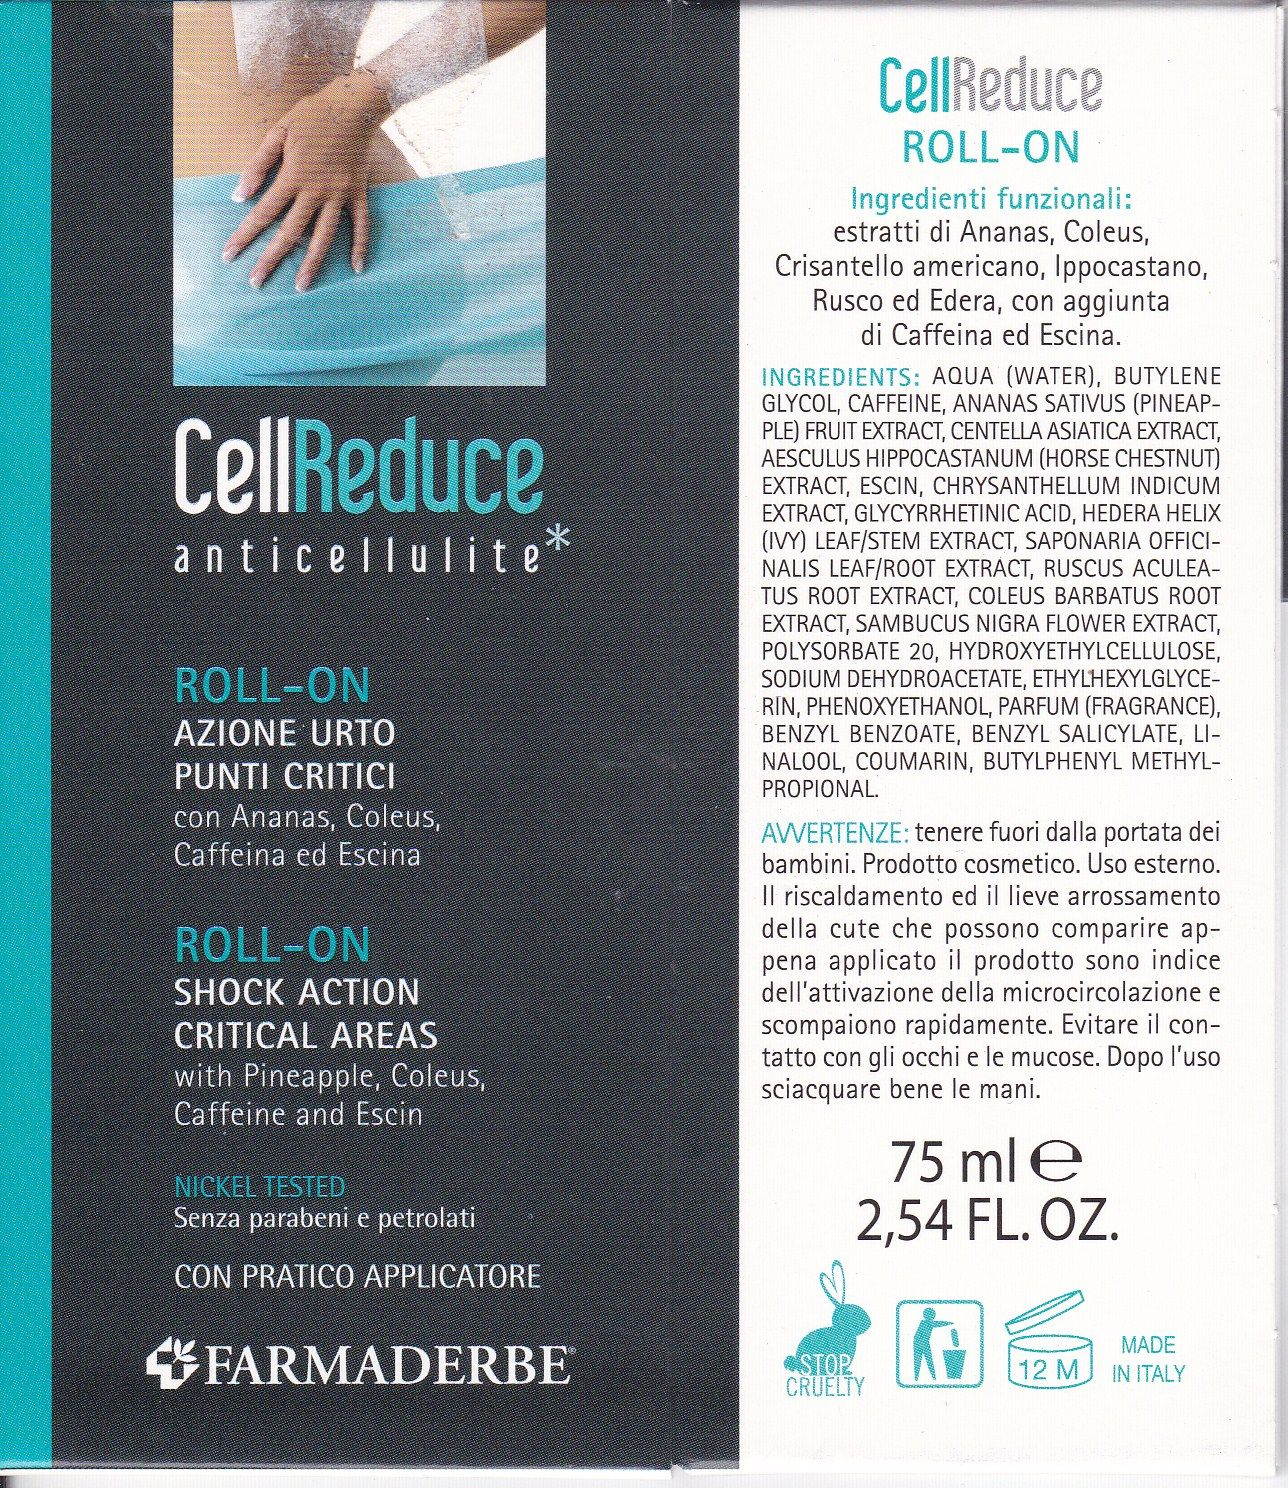 FARMADERBE CELL ROLL-ON   REDUCE anticellulite